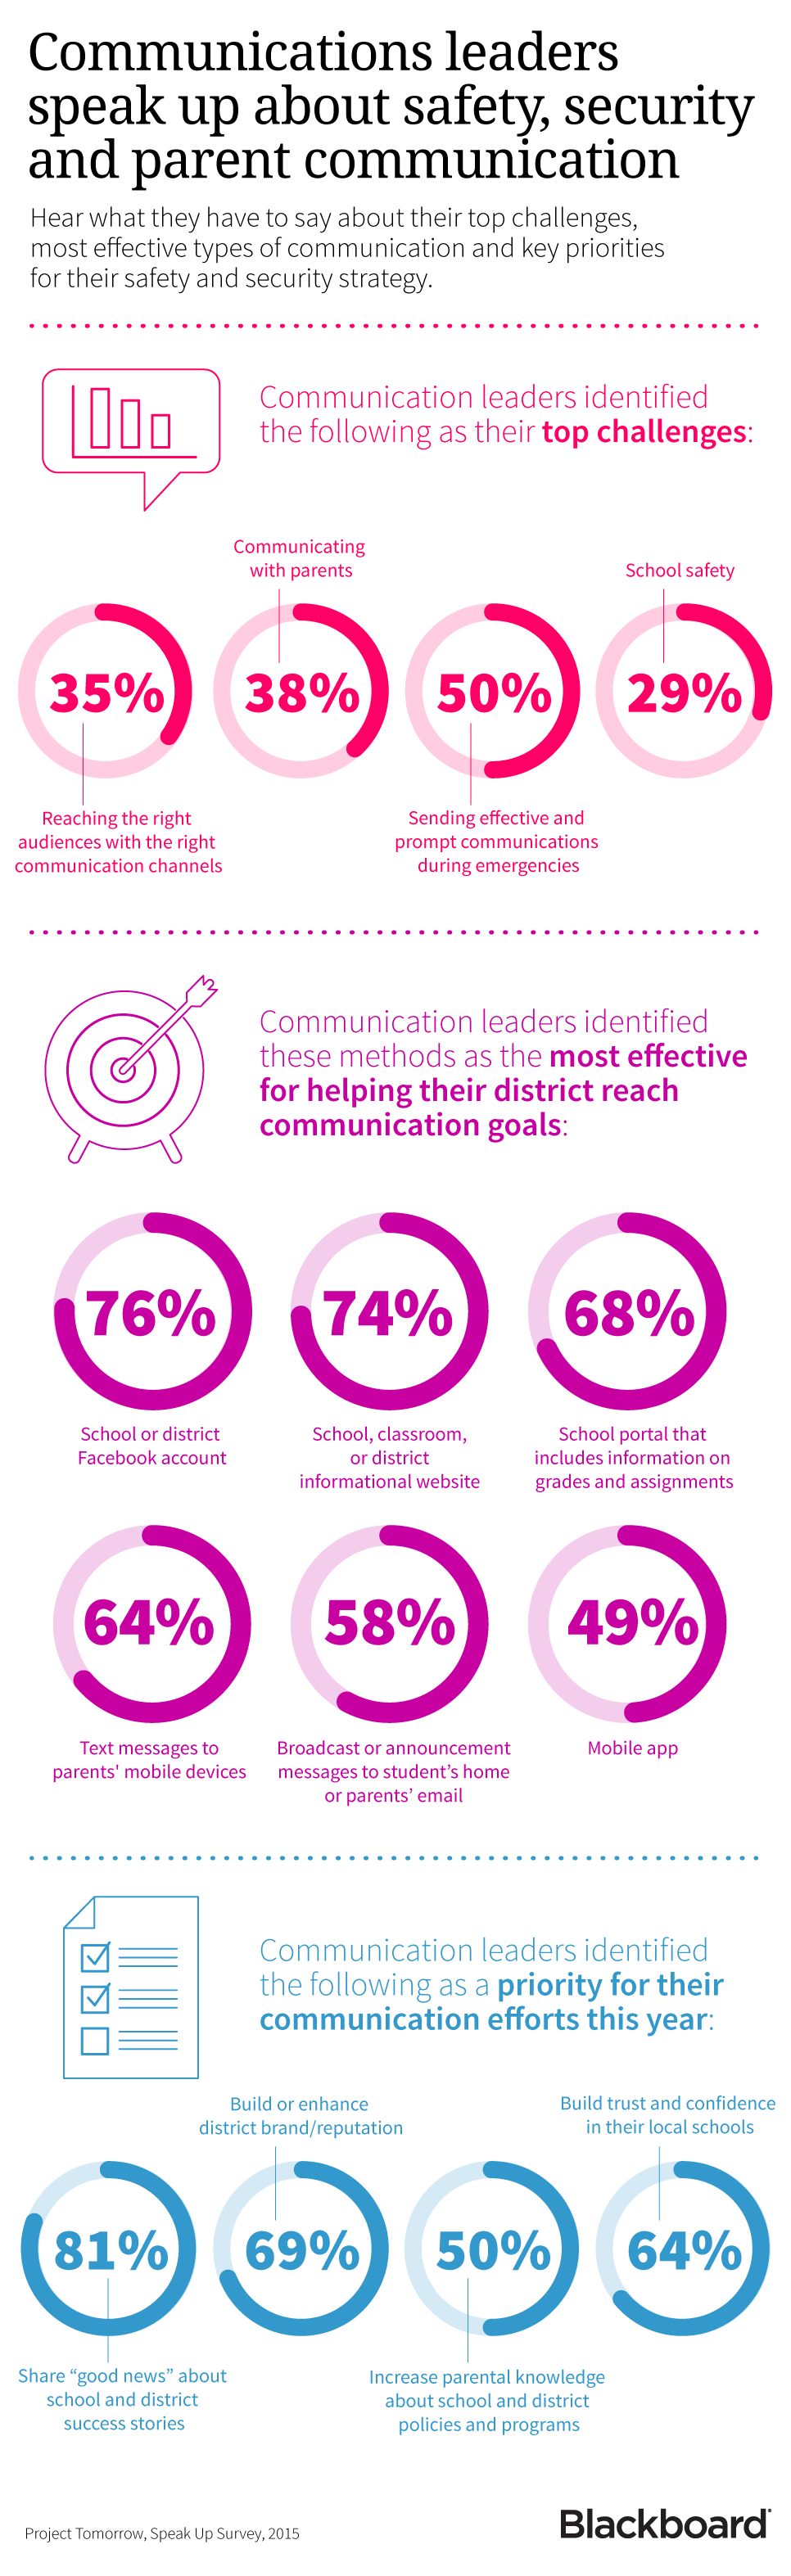 Infographic on safe learning tips from communications leaders